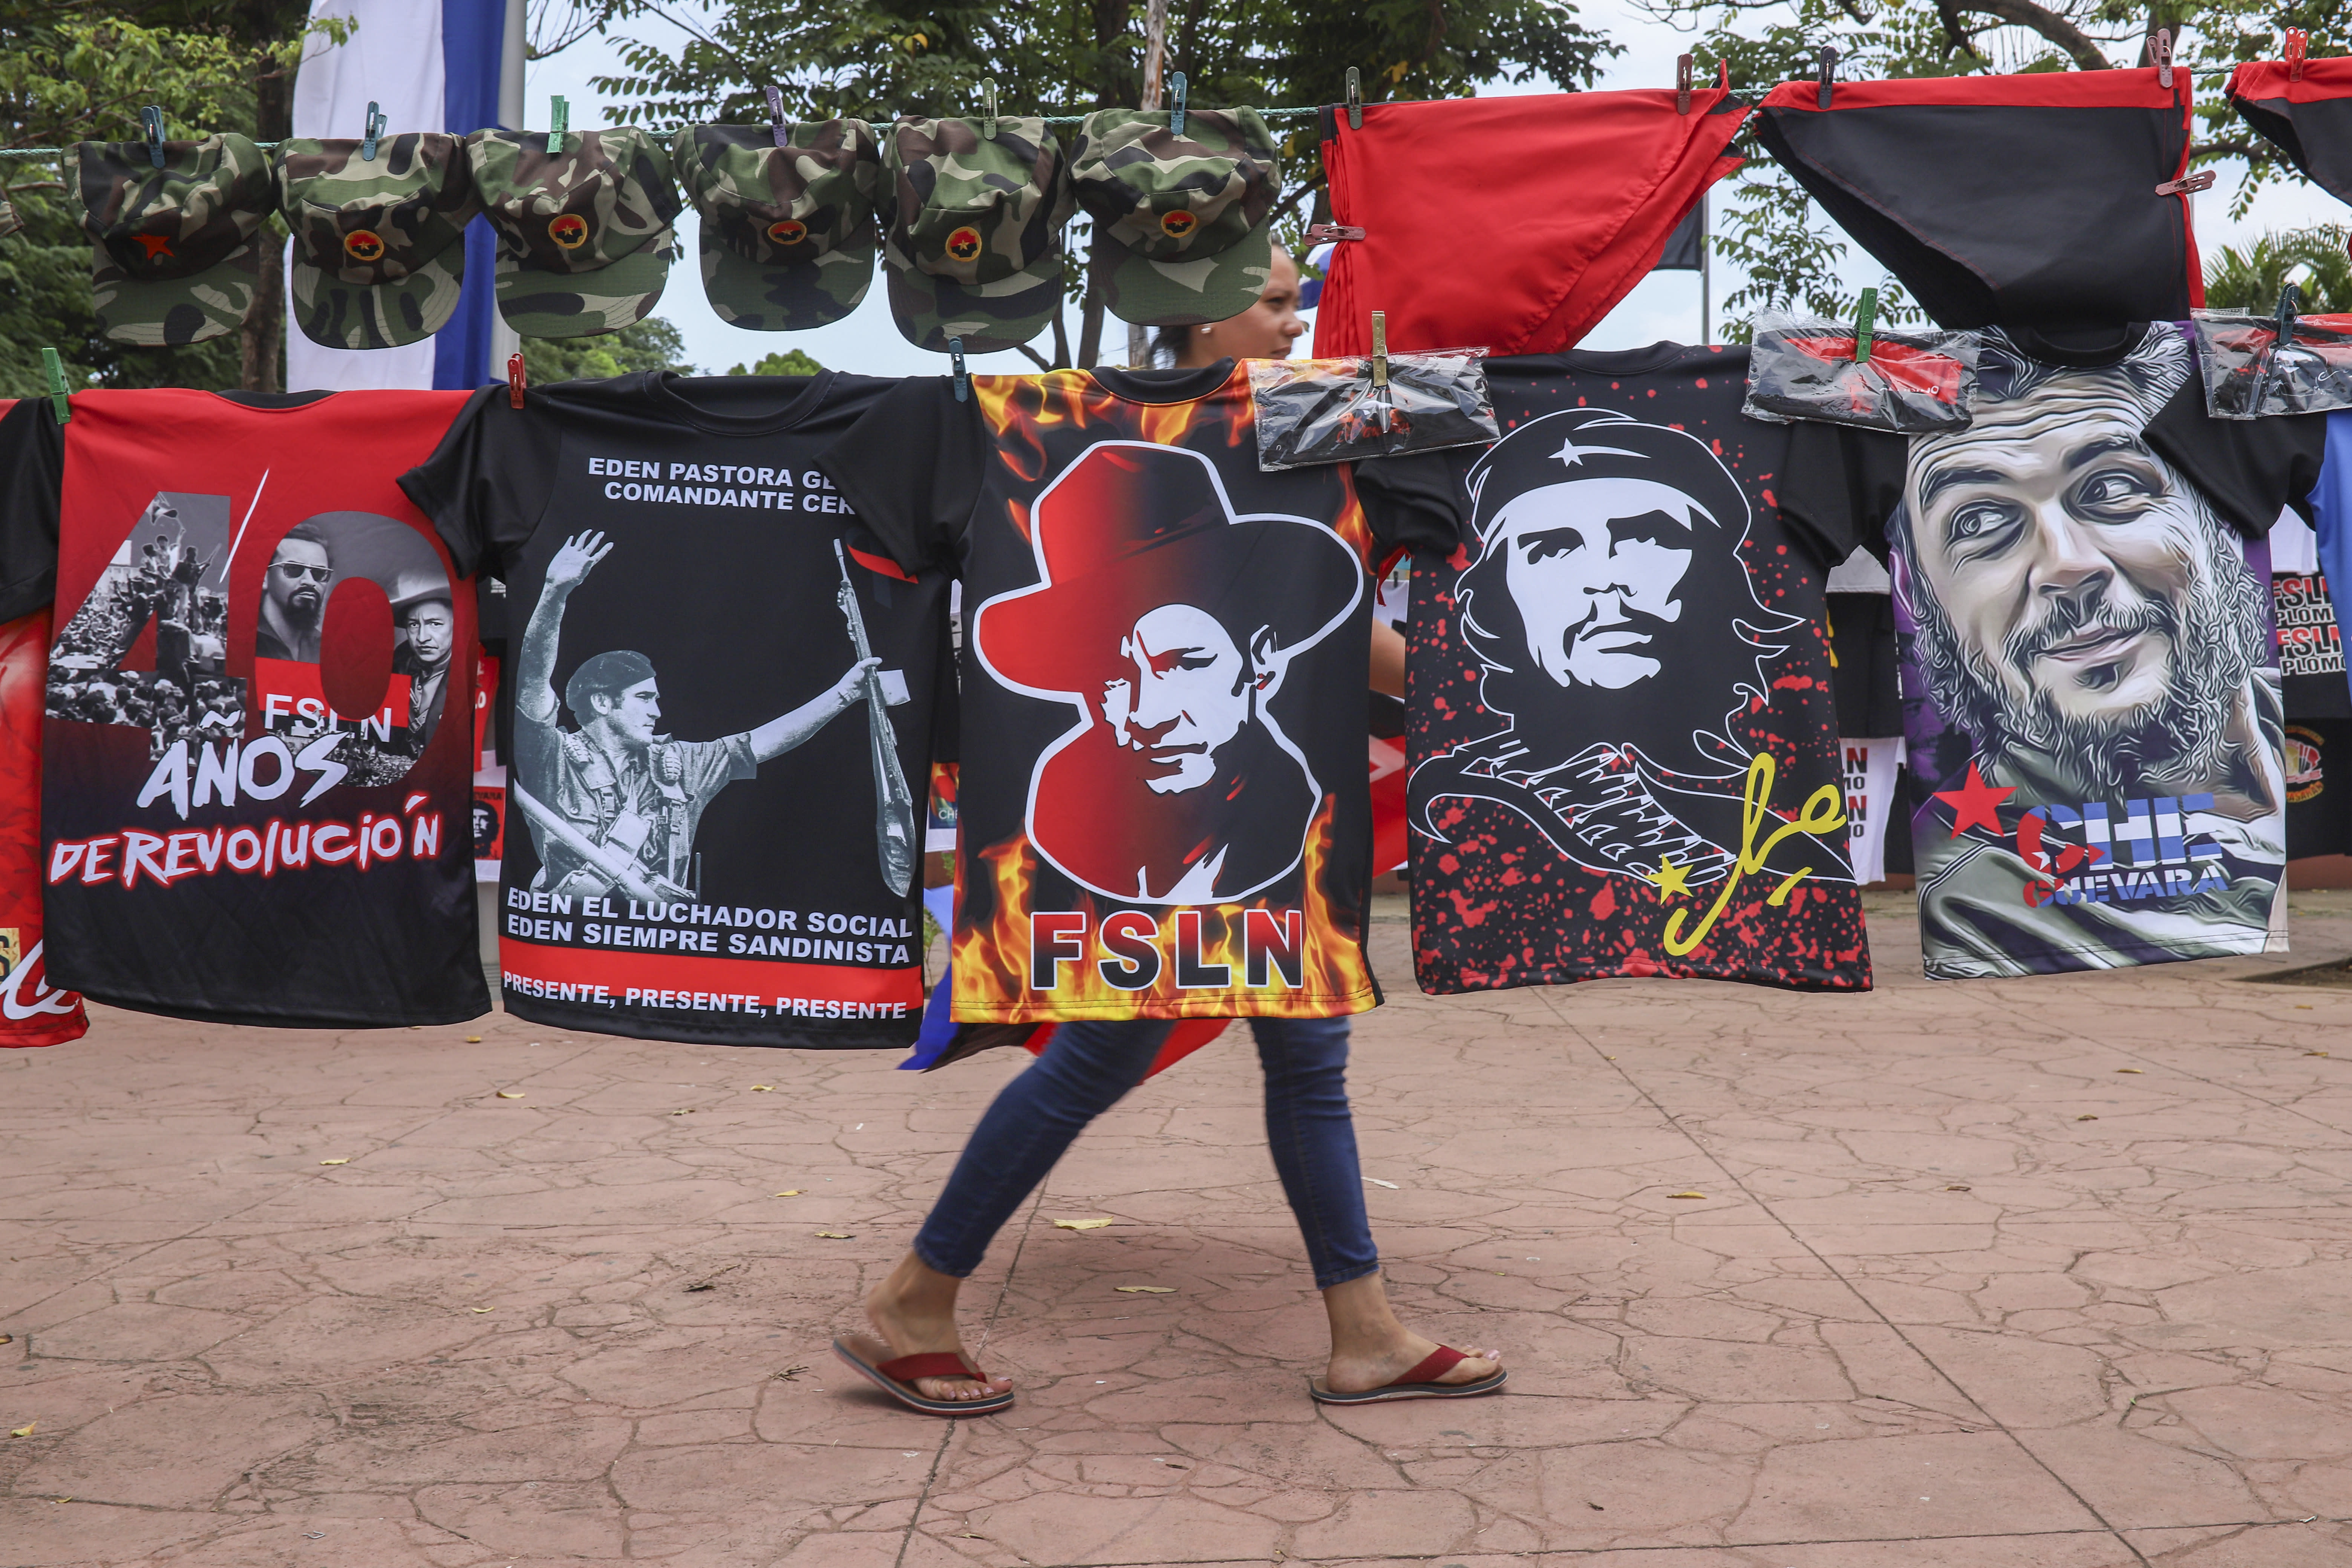 """A woman walks past T-shirts for sale promoting The Sandinista National Liberation Front ruling party on the sidelines of a new monument, called the Peace Bell, before its inauguration ceremony later in the day in Managua, Nicaragua, Friday, July 17, 2020. Nicaraguan President Daniel Ortega's government is being deterred by the new coronavirus from holding the usual mass celebration to mark the victory of the country's revolution July 19, and will instead unveil a new addition to its collection of monuments. At right are two T-shirts of Cuba's revolutionary hero Ernesto """"Che"""" Guevara. (AP Photo/Alfredo Zuniga)"""